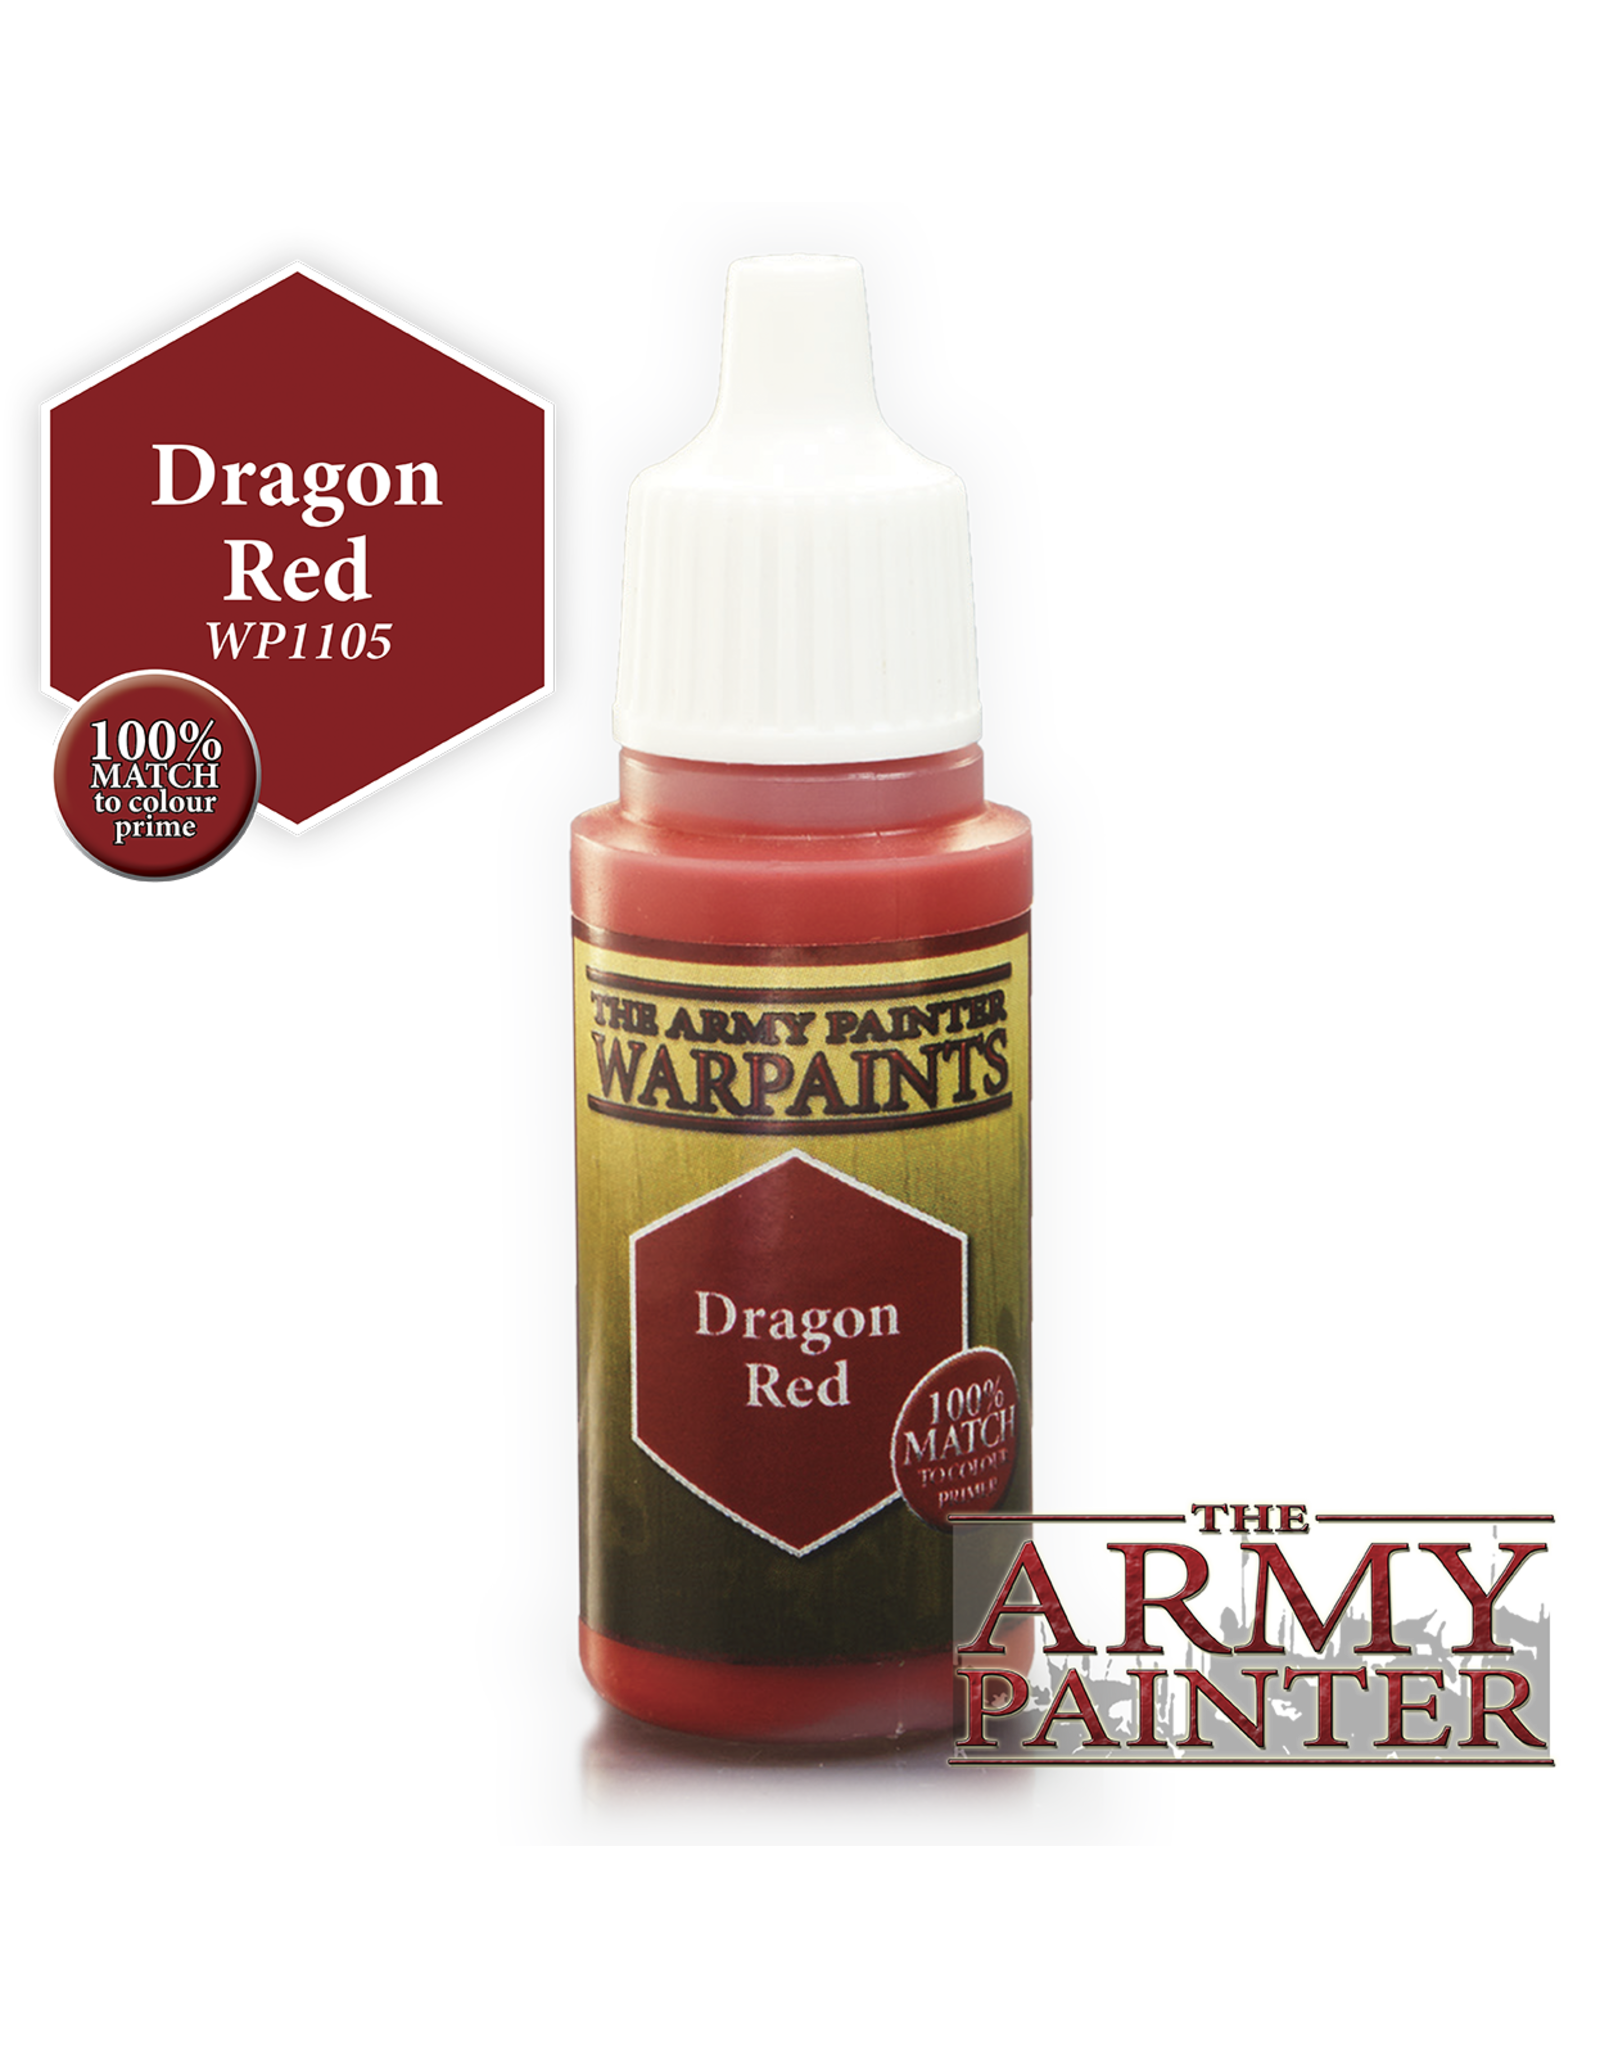 THE ARMY PAINTER ARMY PAINTER WARPAINTS DRAGON RED